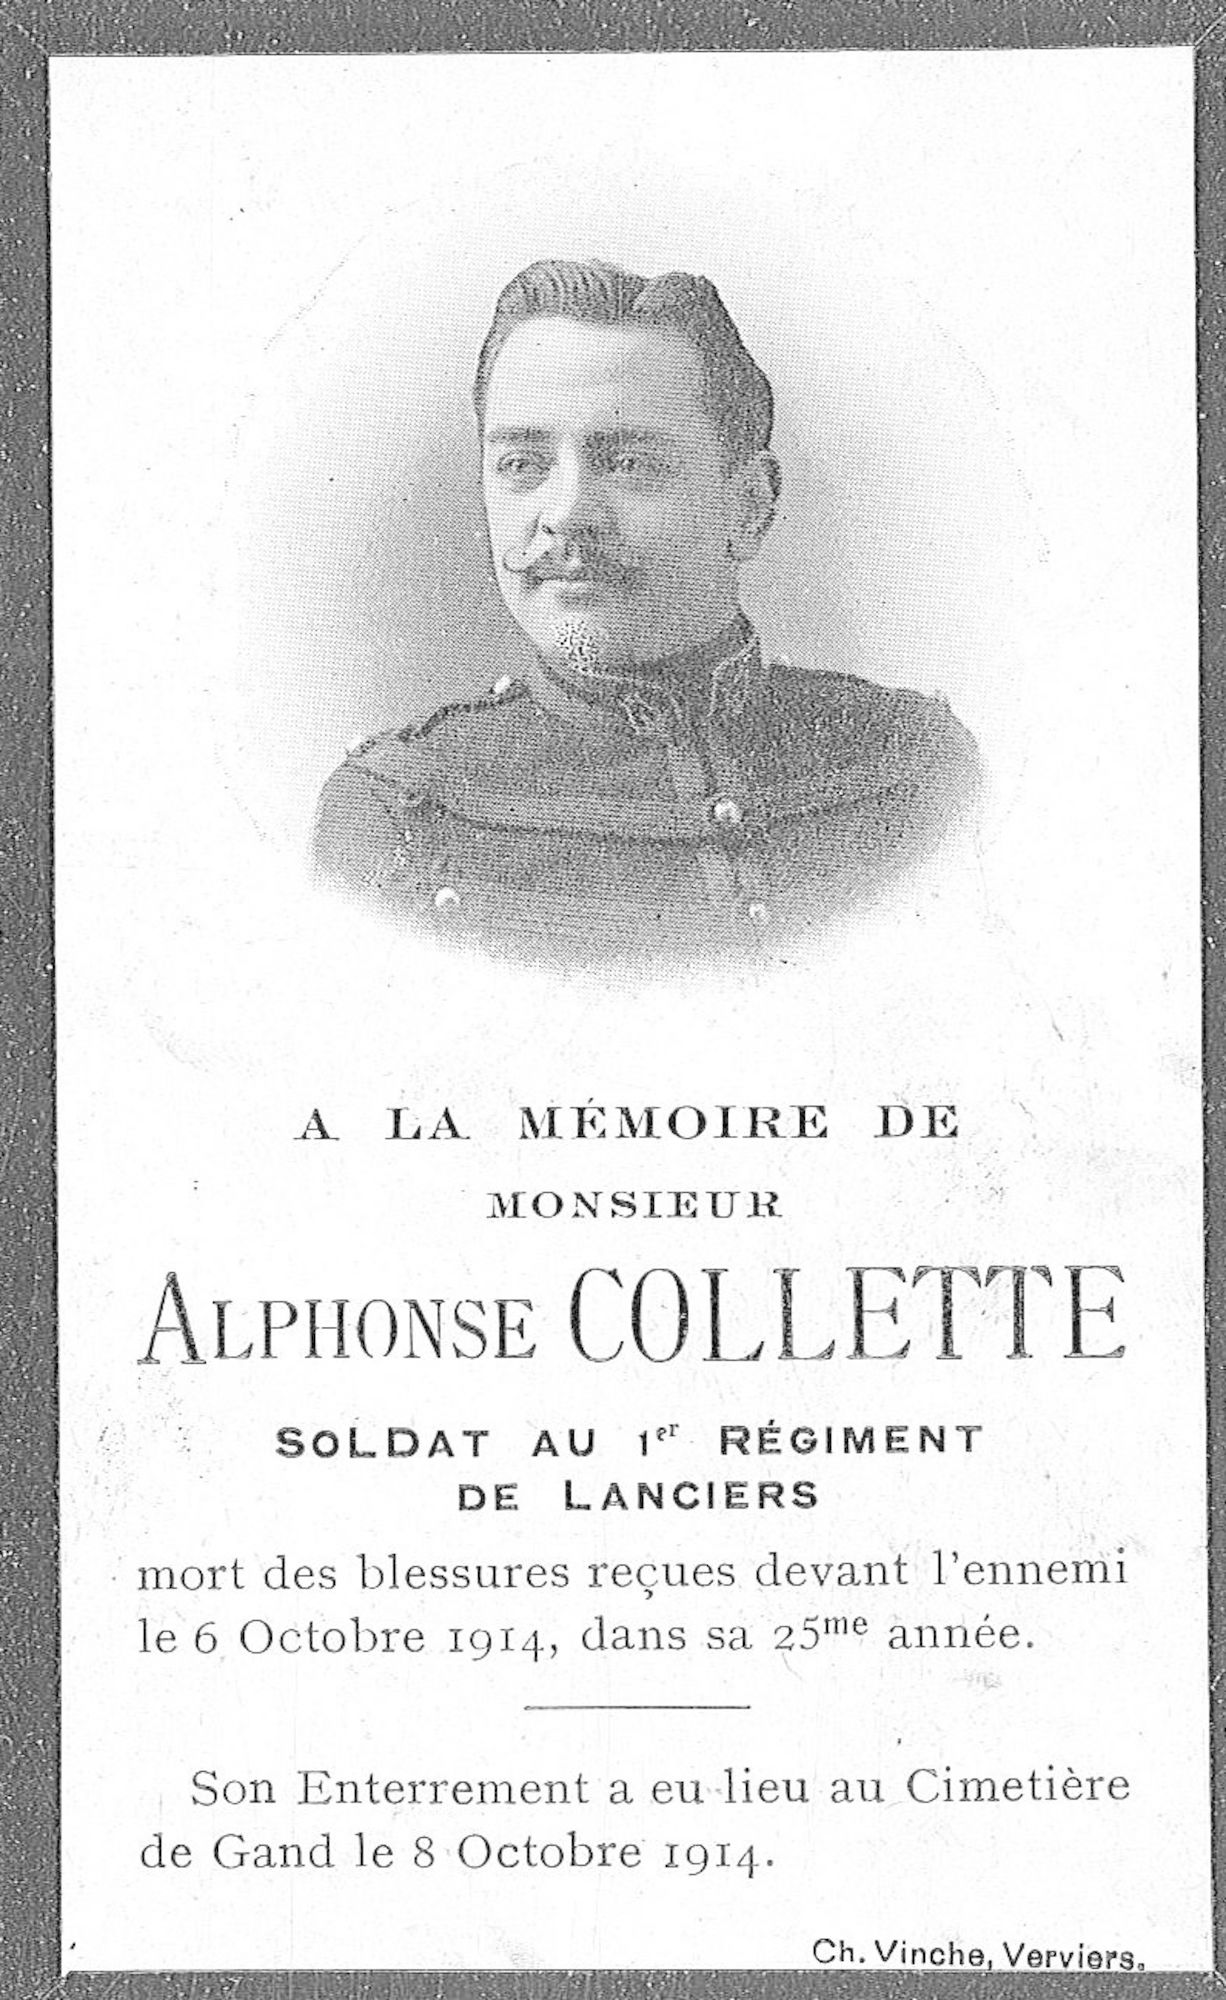 Alphonse Collette